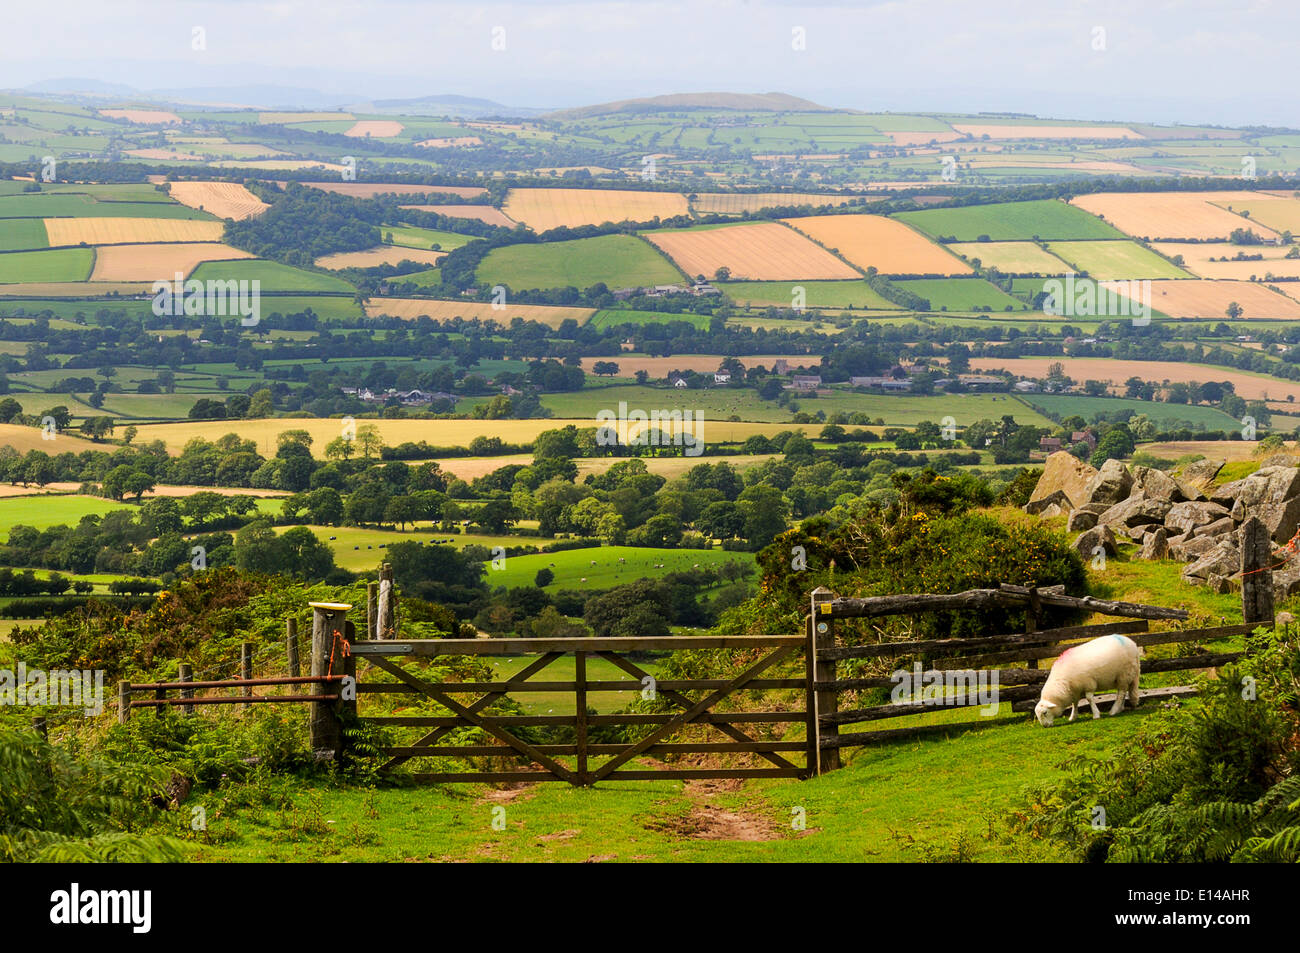 Looking over five bar gate on the Shropshire Way from Brown Clee Hill at Corvedale. - Stock Image